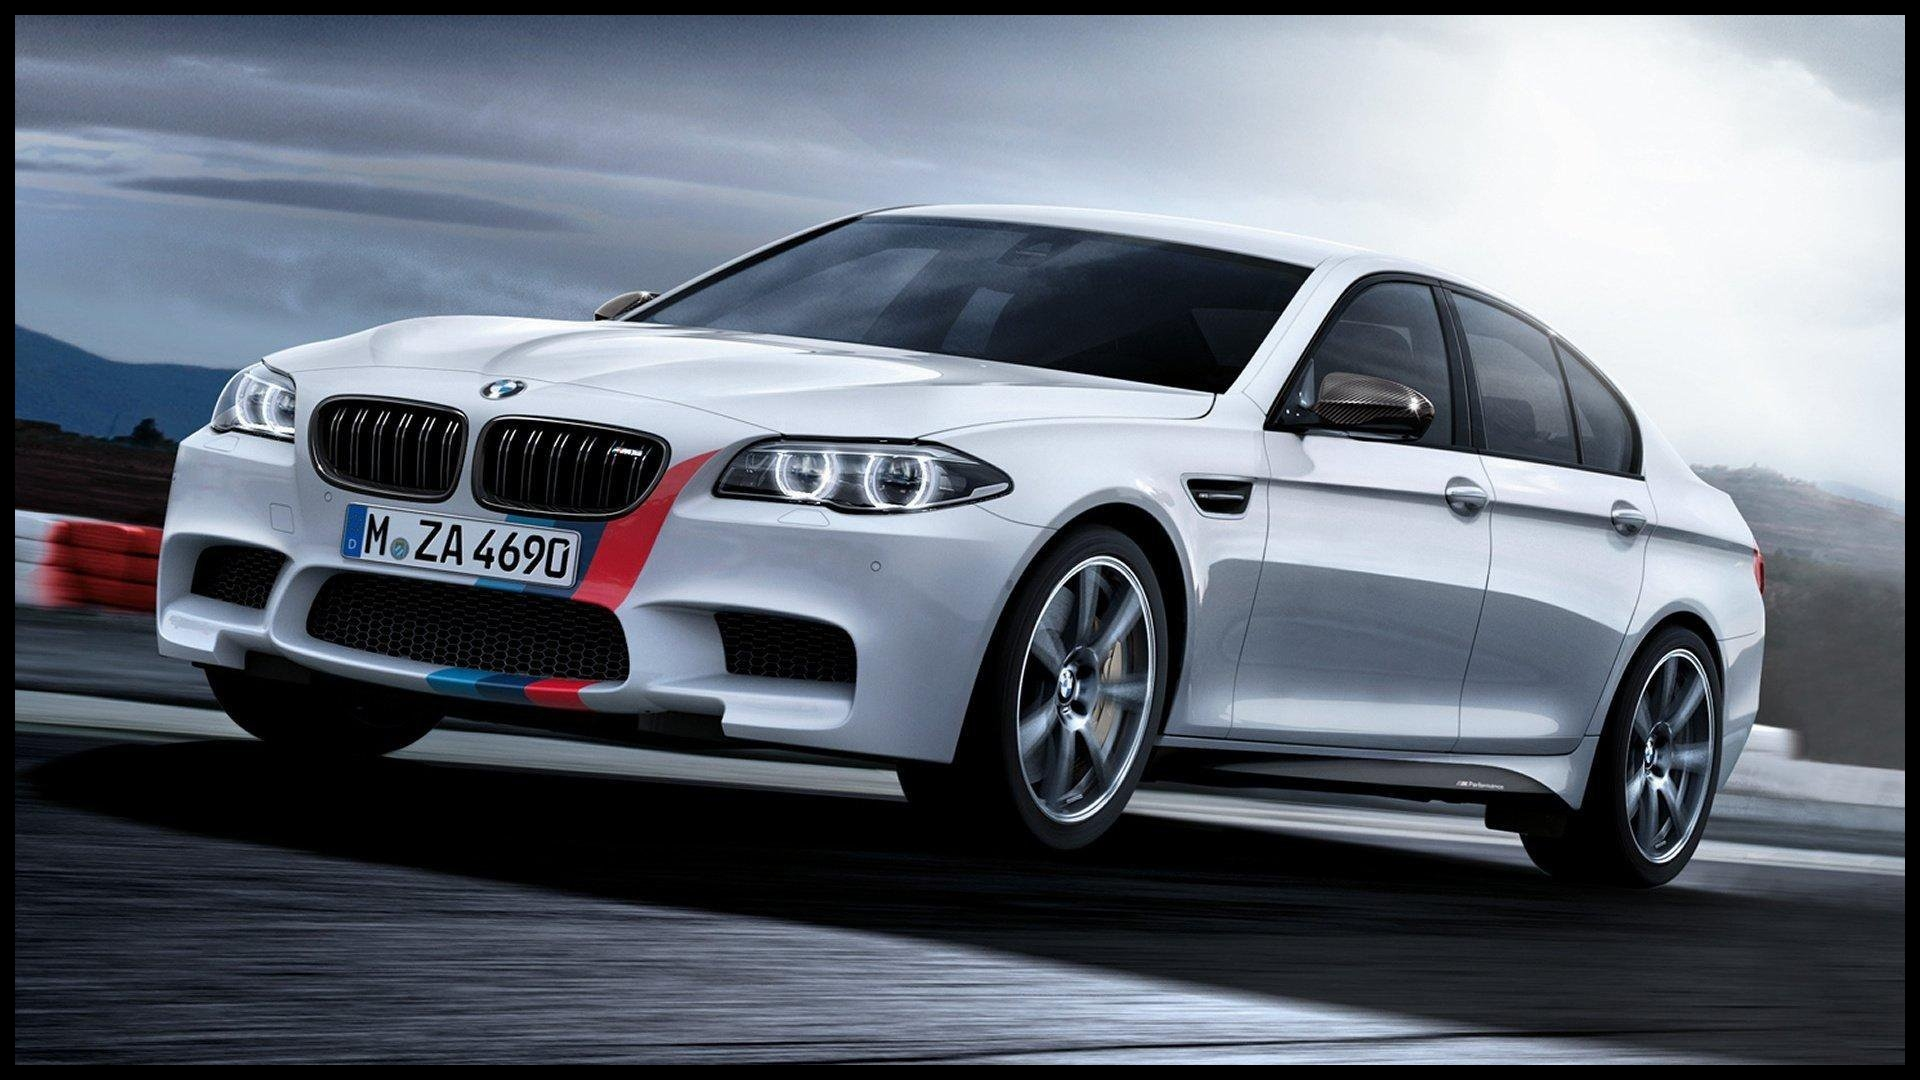 BMW M5 M Performance Accessories Car wallpaper and High Definition car images for iPhone Android & desktop background Below you will find wallpapers of